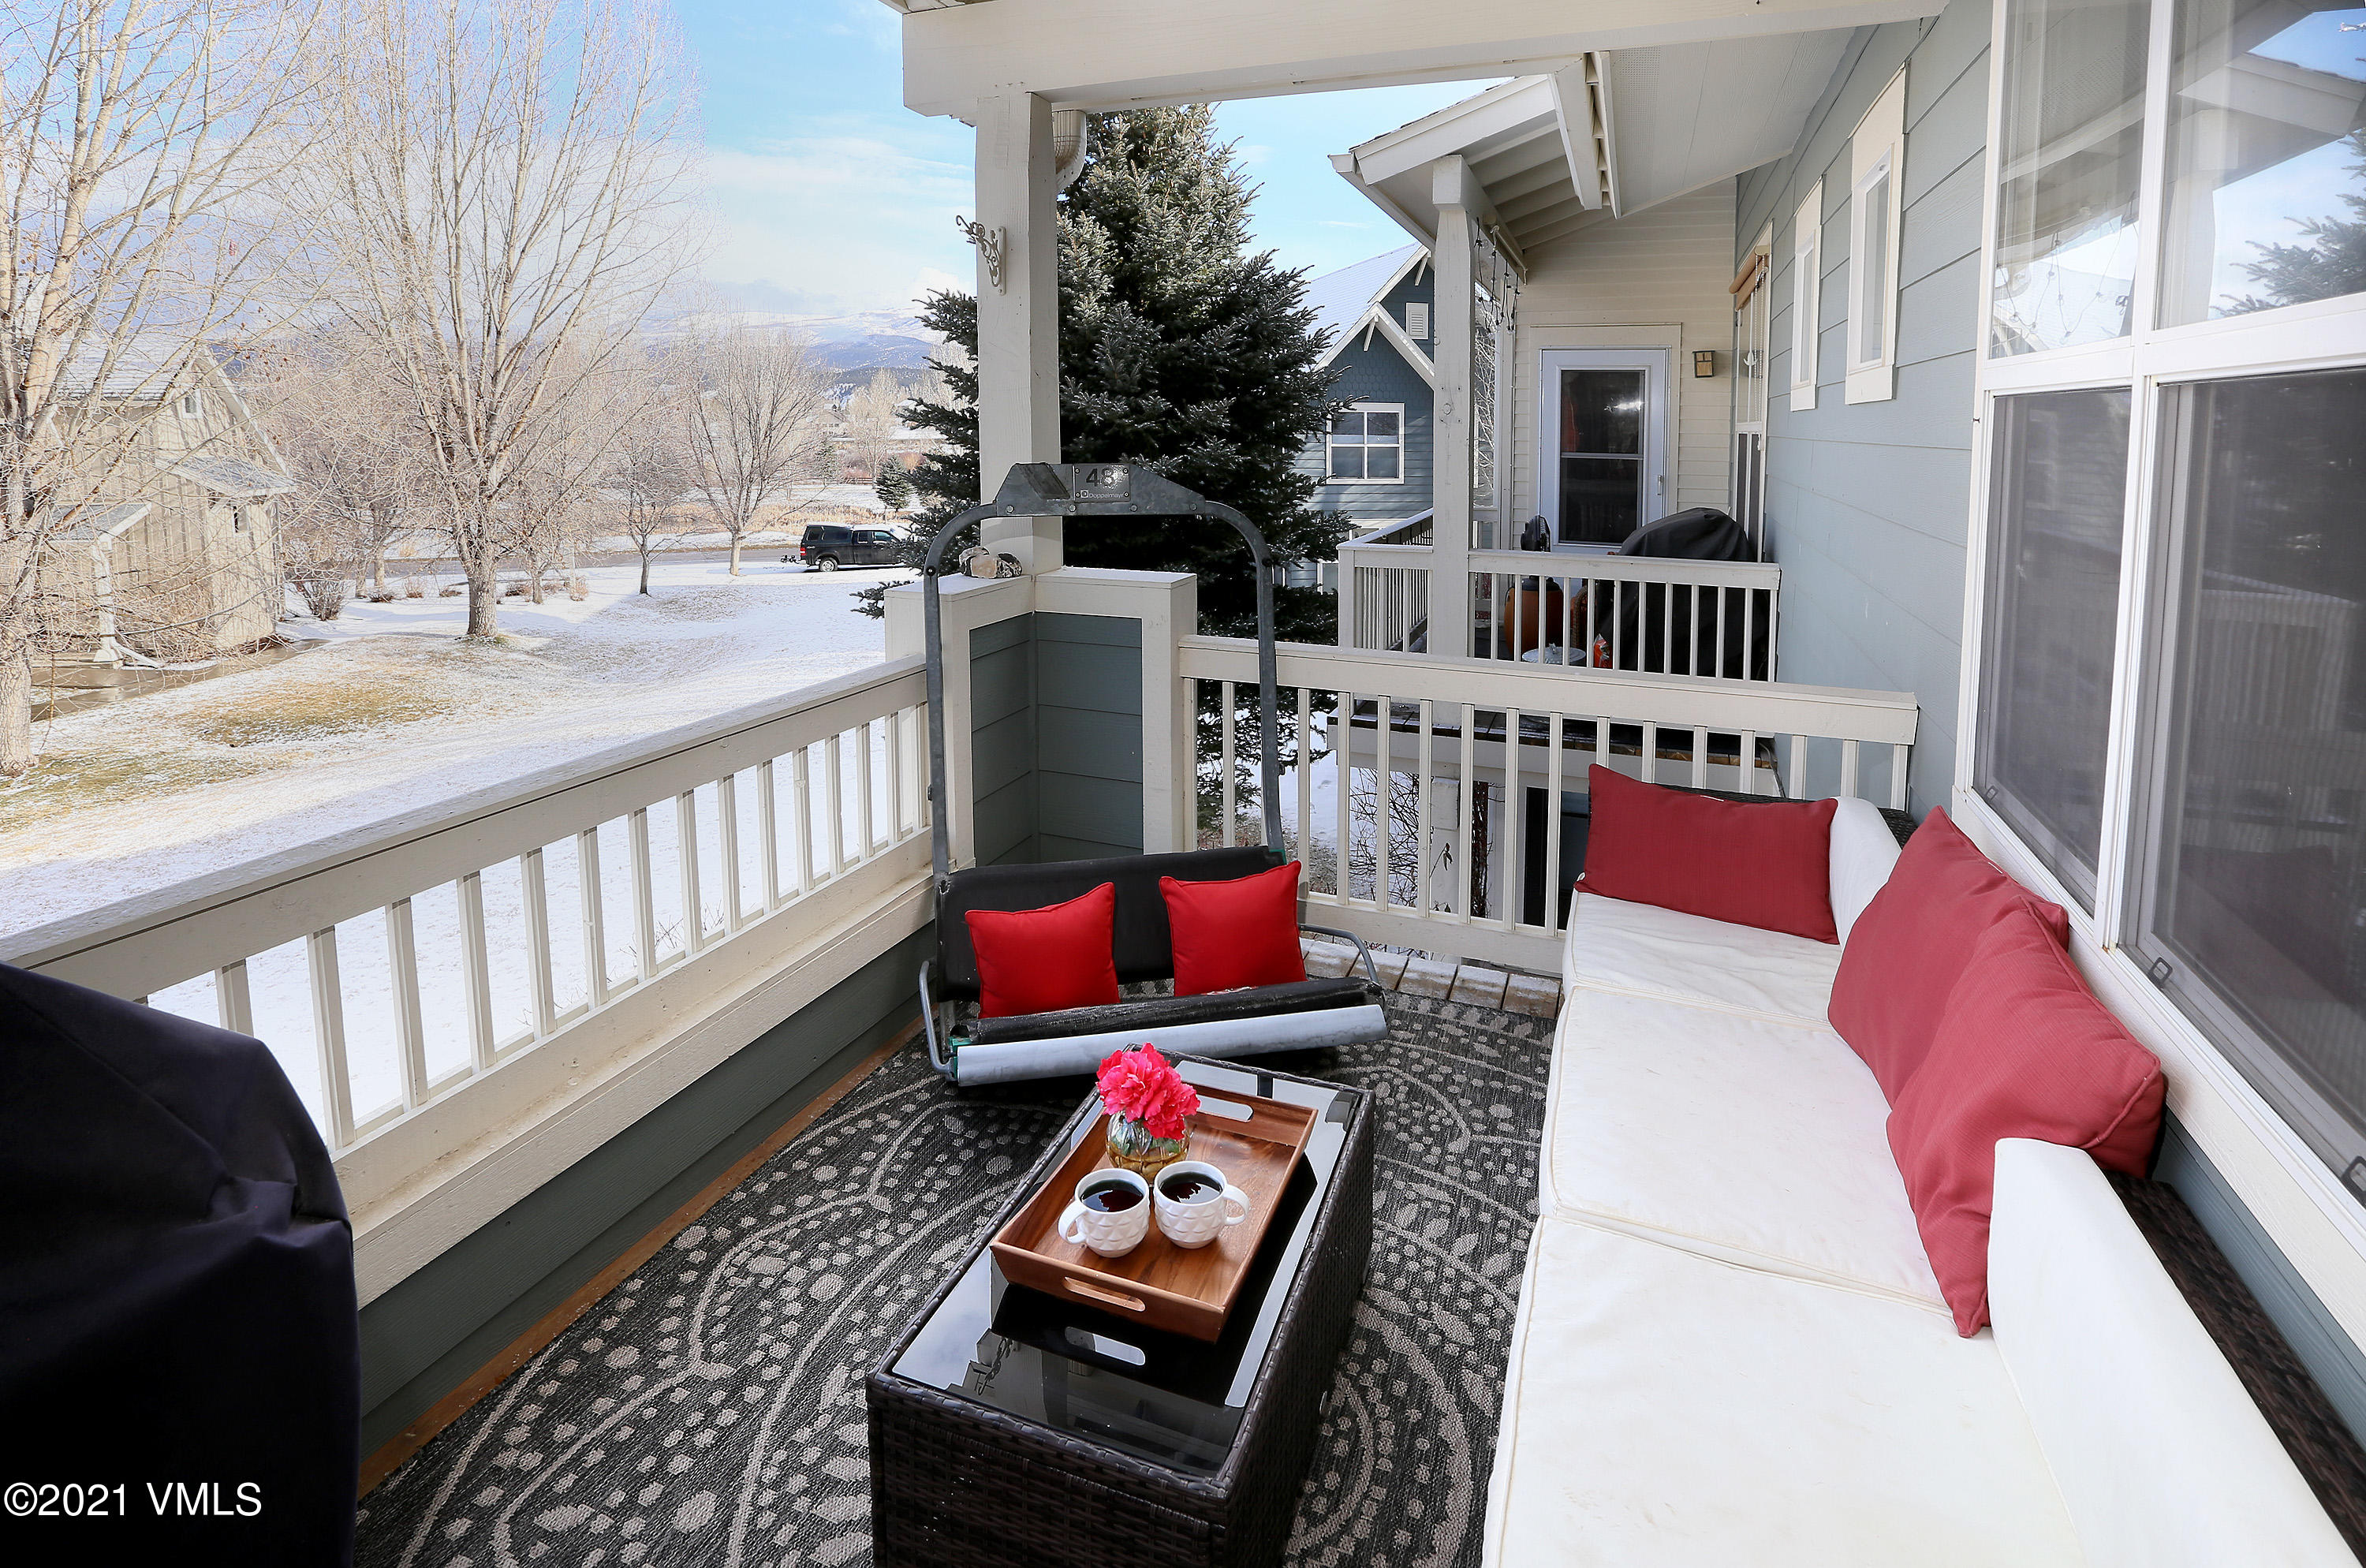 Come home to this sunny top-floor Founders Place condominium overlooking green space. Meticulously maintained, this home offers a spacious deck, hardwood floors, slab granite kitchen counters, new appliances, smarthome technology, custom closets, and a bonus storage room adds nearly 100 extra square feet. Located 25 minutes from Vail/Beaver Creek and in the heart of Eagle Ranch Village with everything out your door - shops, restaurants, outdoor concerts, miles of dog walking paths across the street, mountain biking trails, the new riverfront whitewater park, golf course, pool, children's fishing ponds and so much more. Well-managed HOA makes this the perfect starter home or rental property.